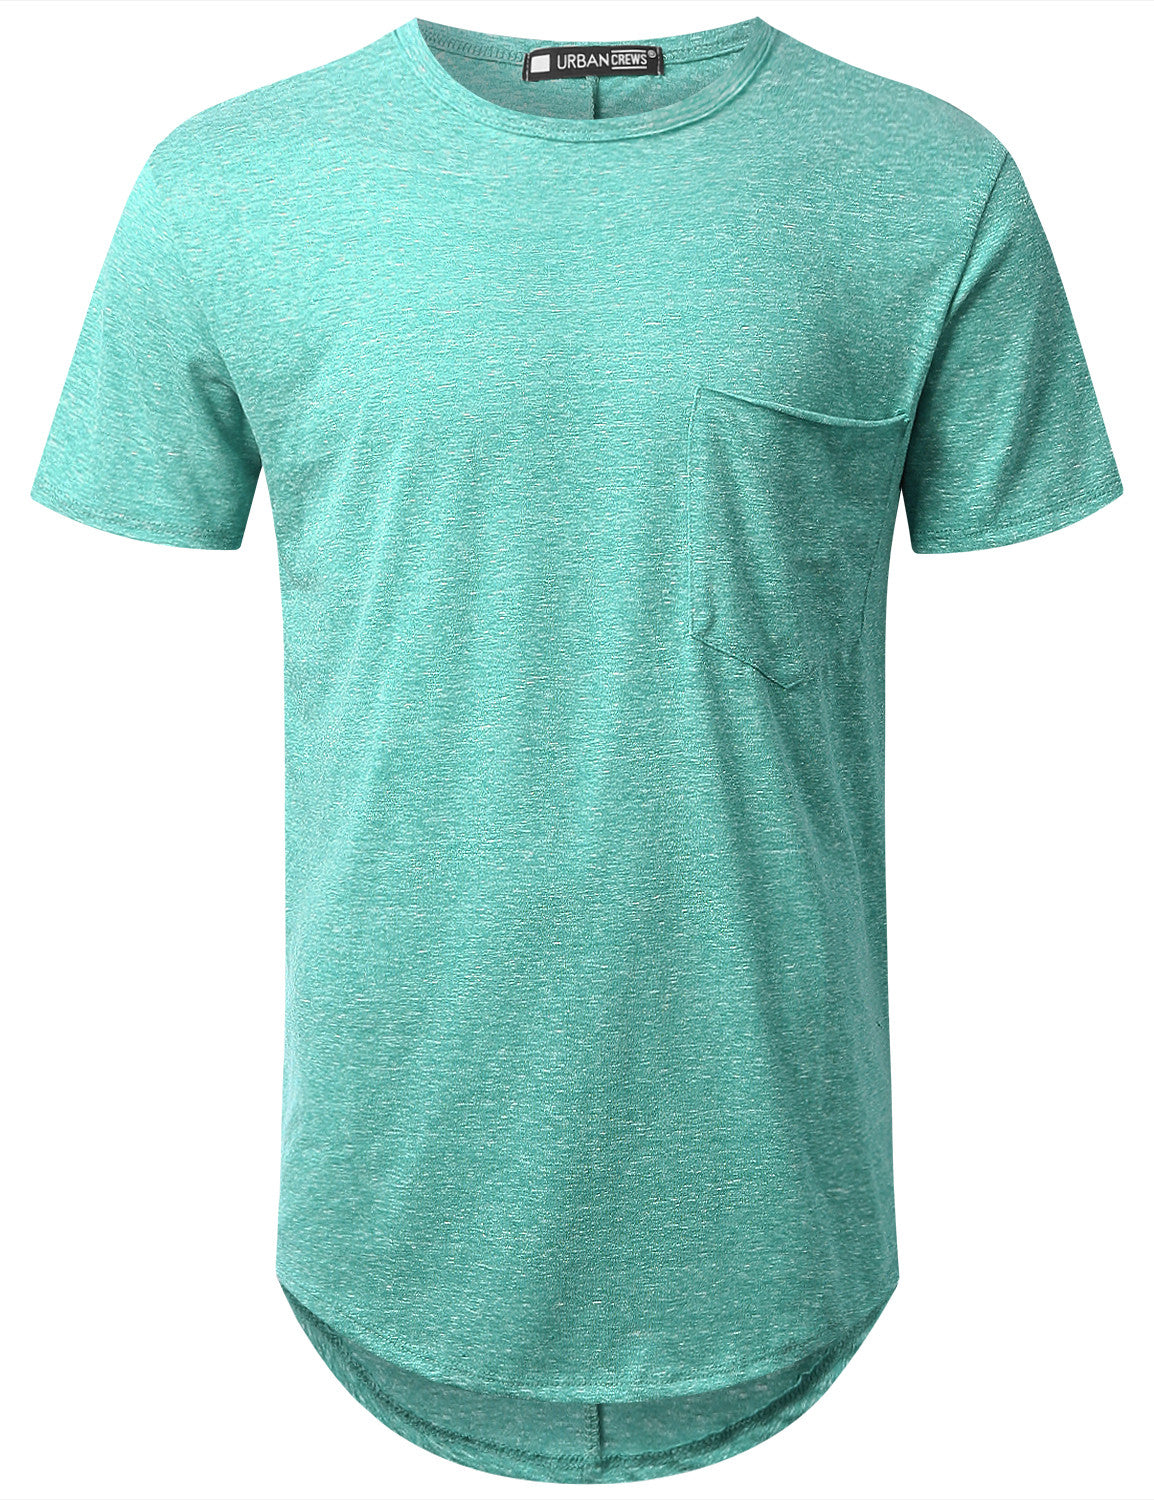 JADE Melange Longline Pocket T-shirt - URBANCREWS